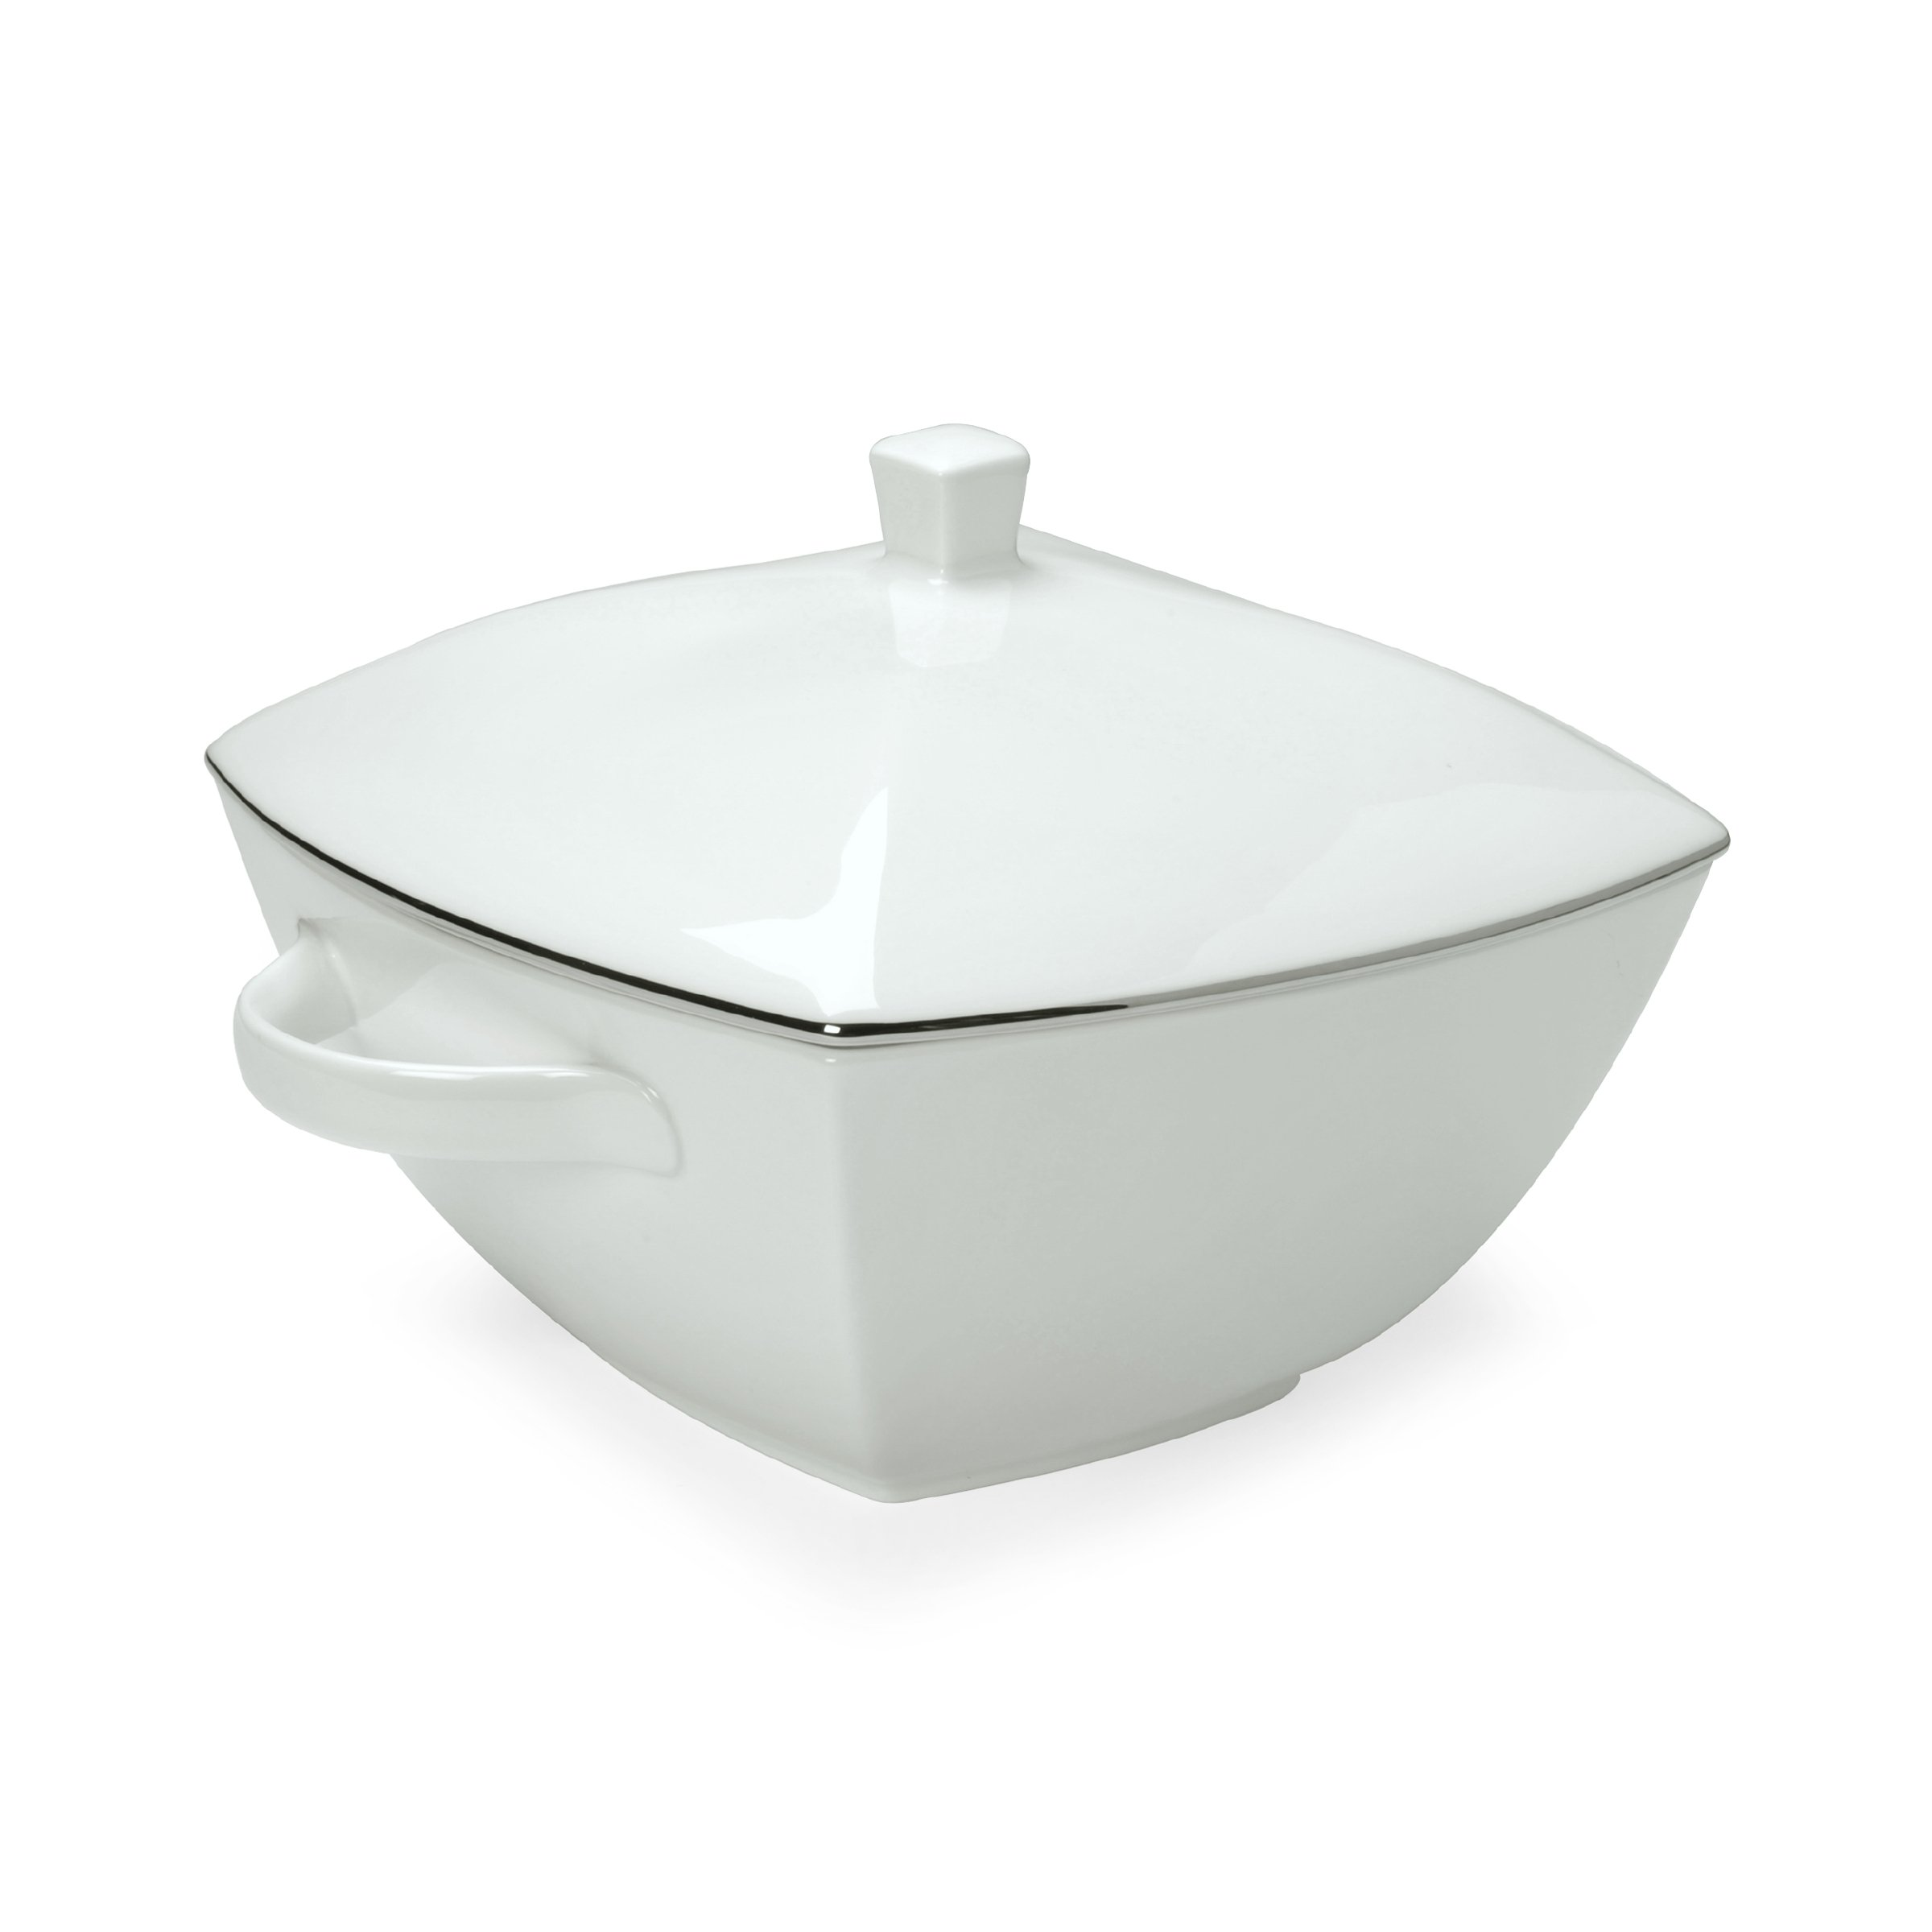 Mikasa Couture Platinum Covered Casserole, 11-Inch